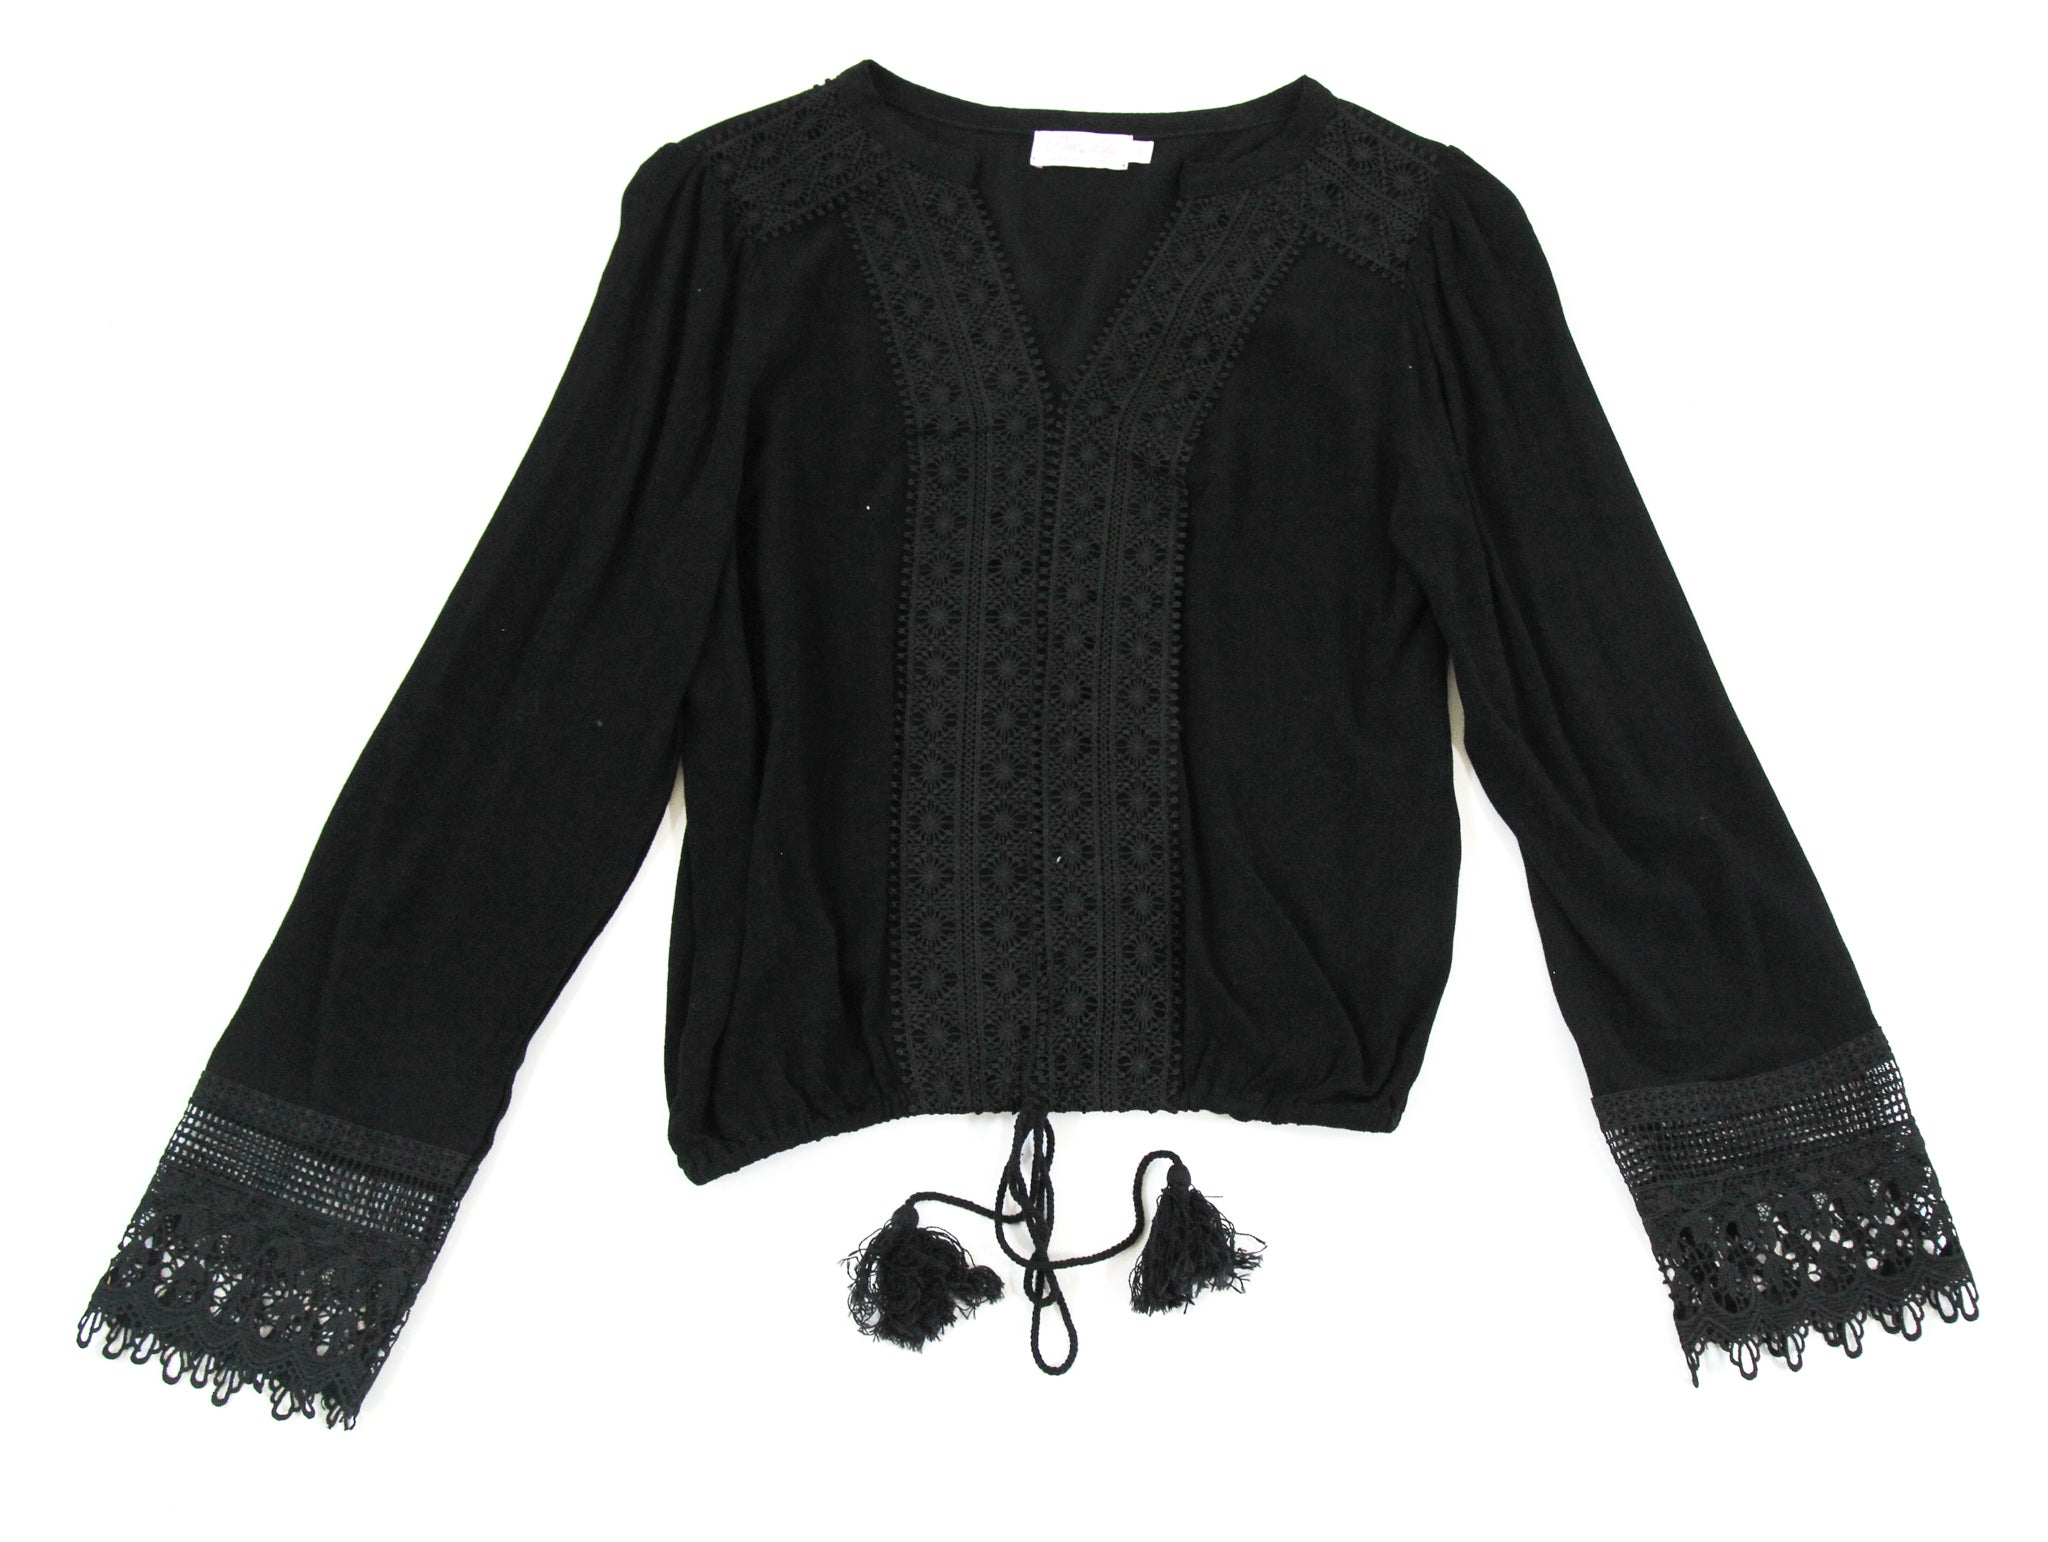 V-Neck Tassel Blouse